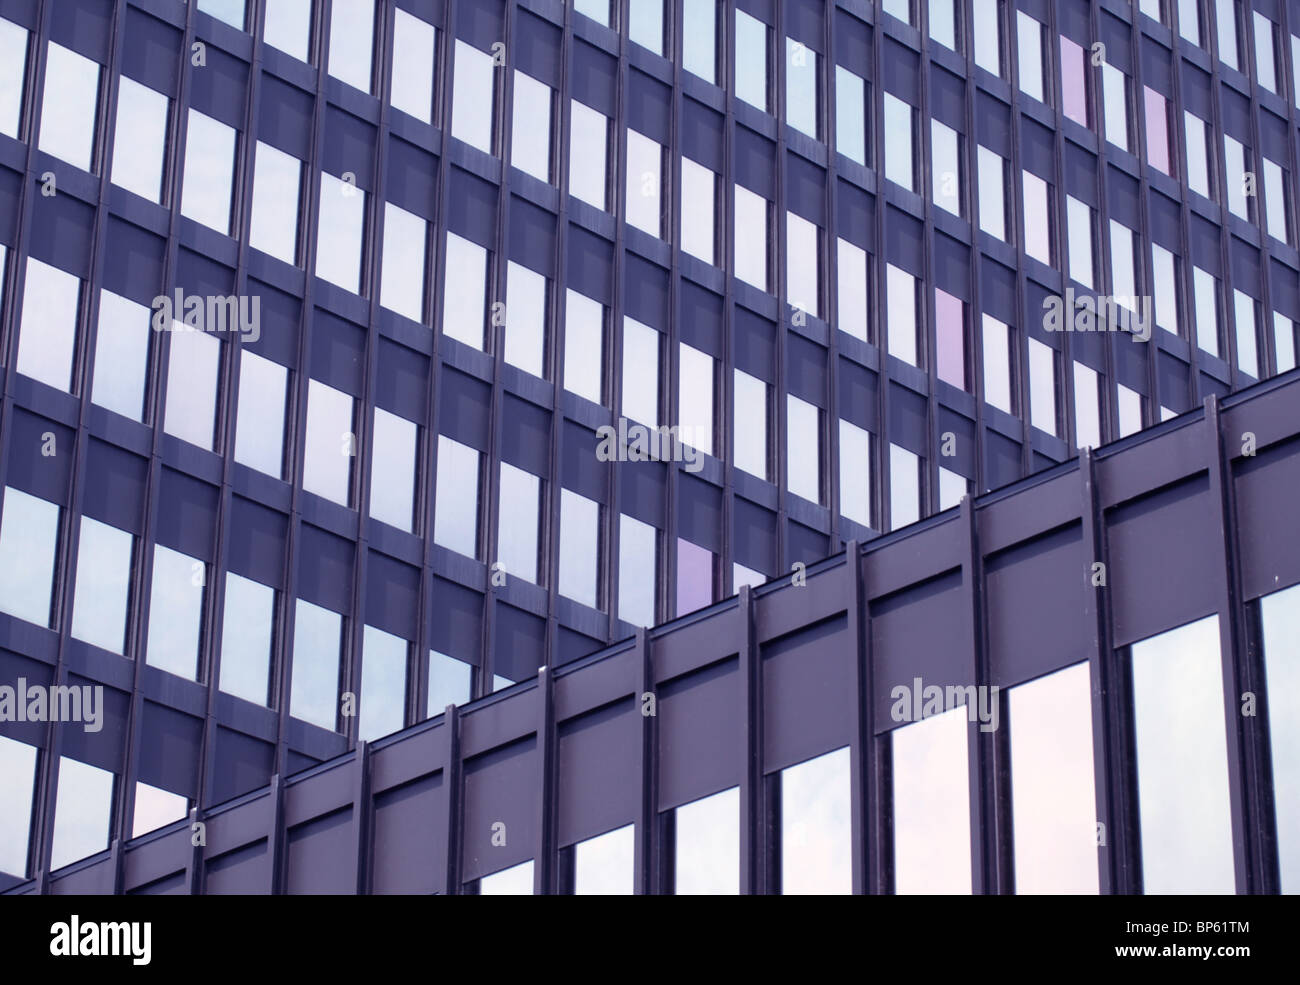 The exterior of a steel and glass office building - Stock Image